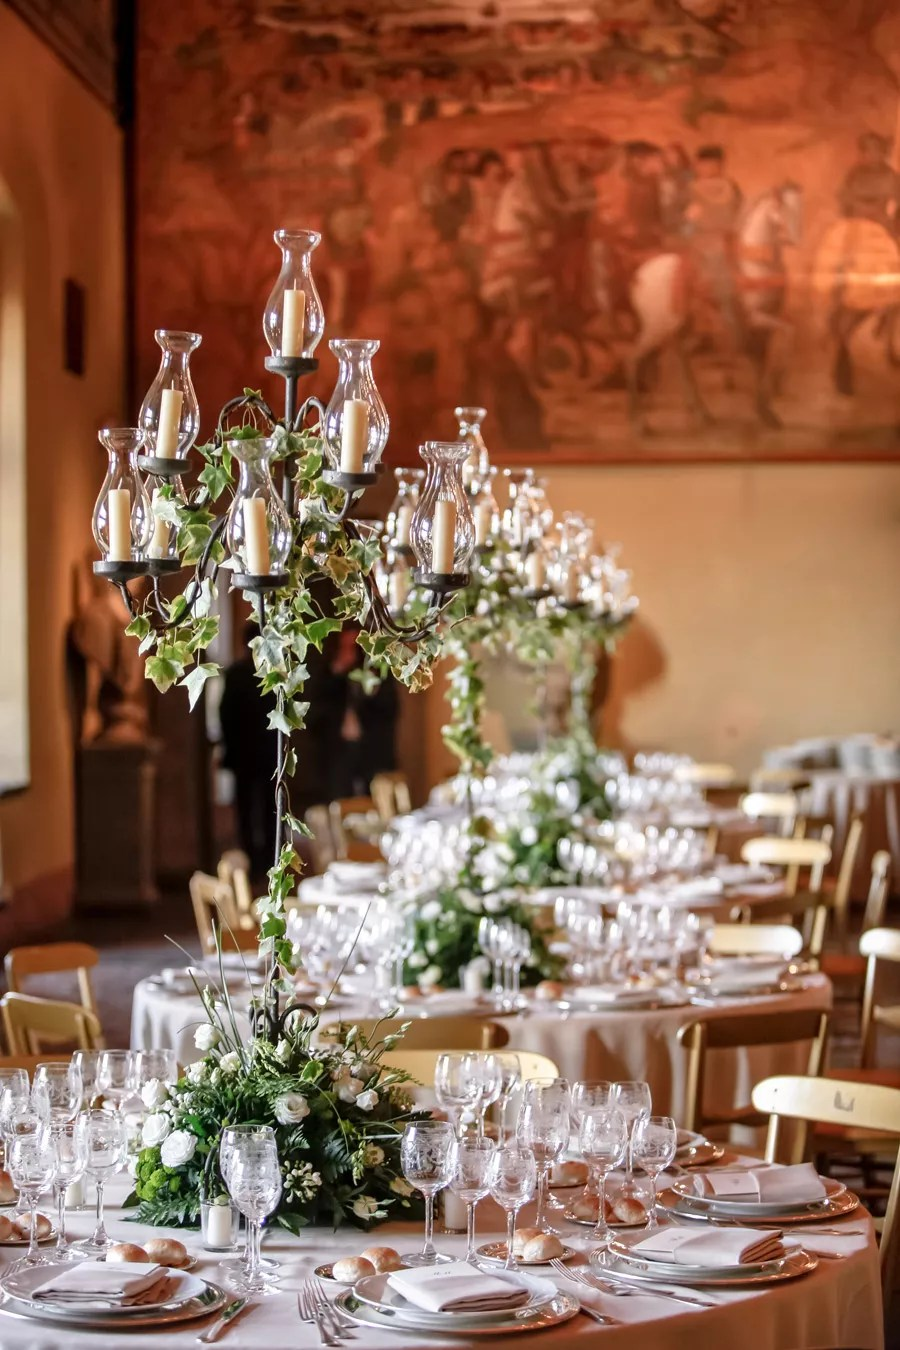 Candelabra Centerpieces With Ivy